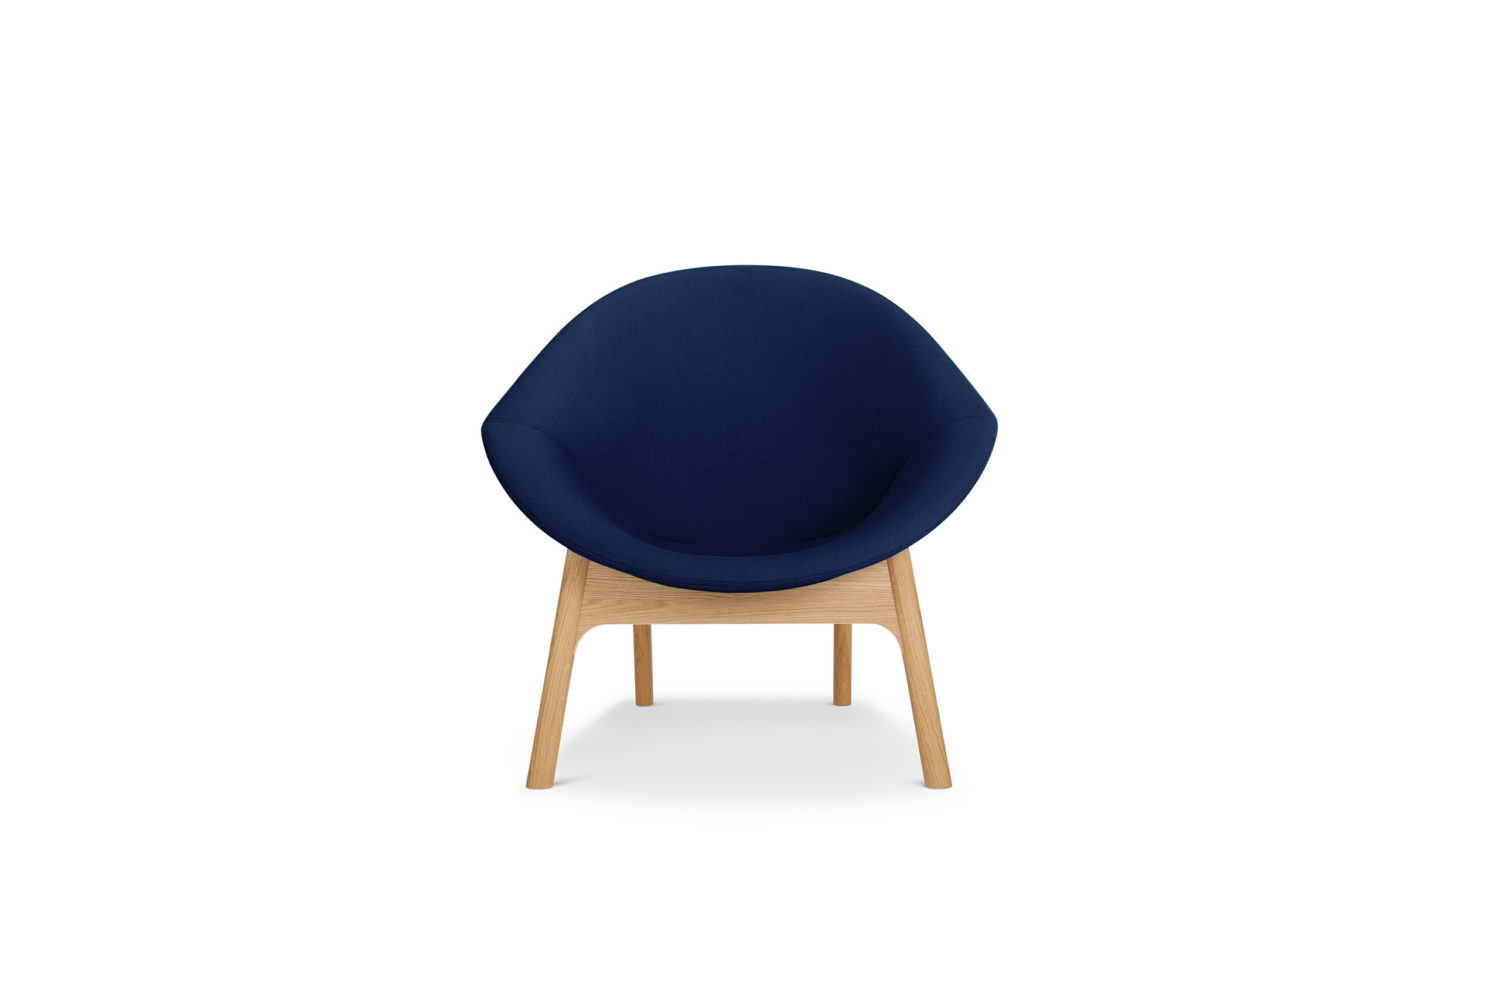 Lily Chair By Michael Sodeau 1